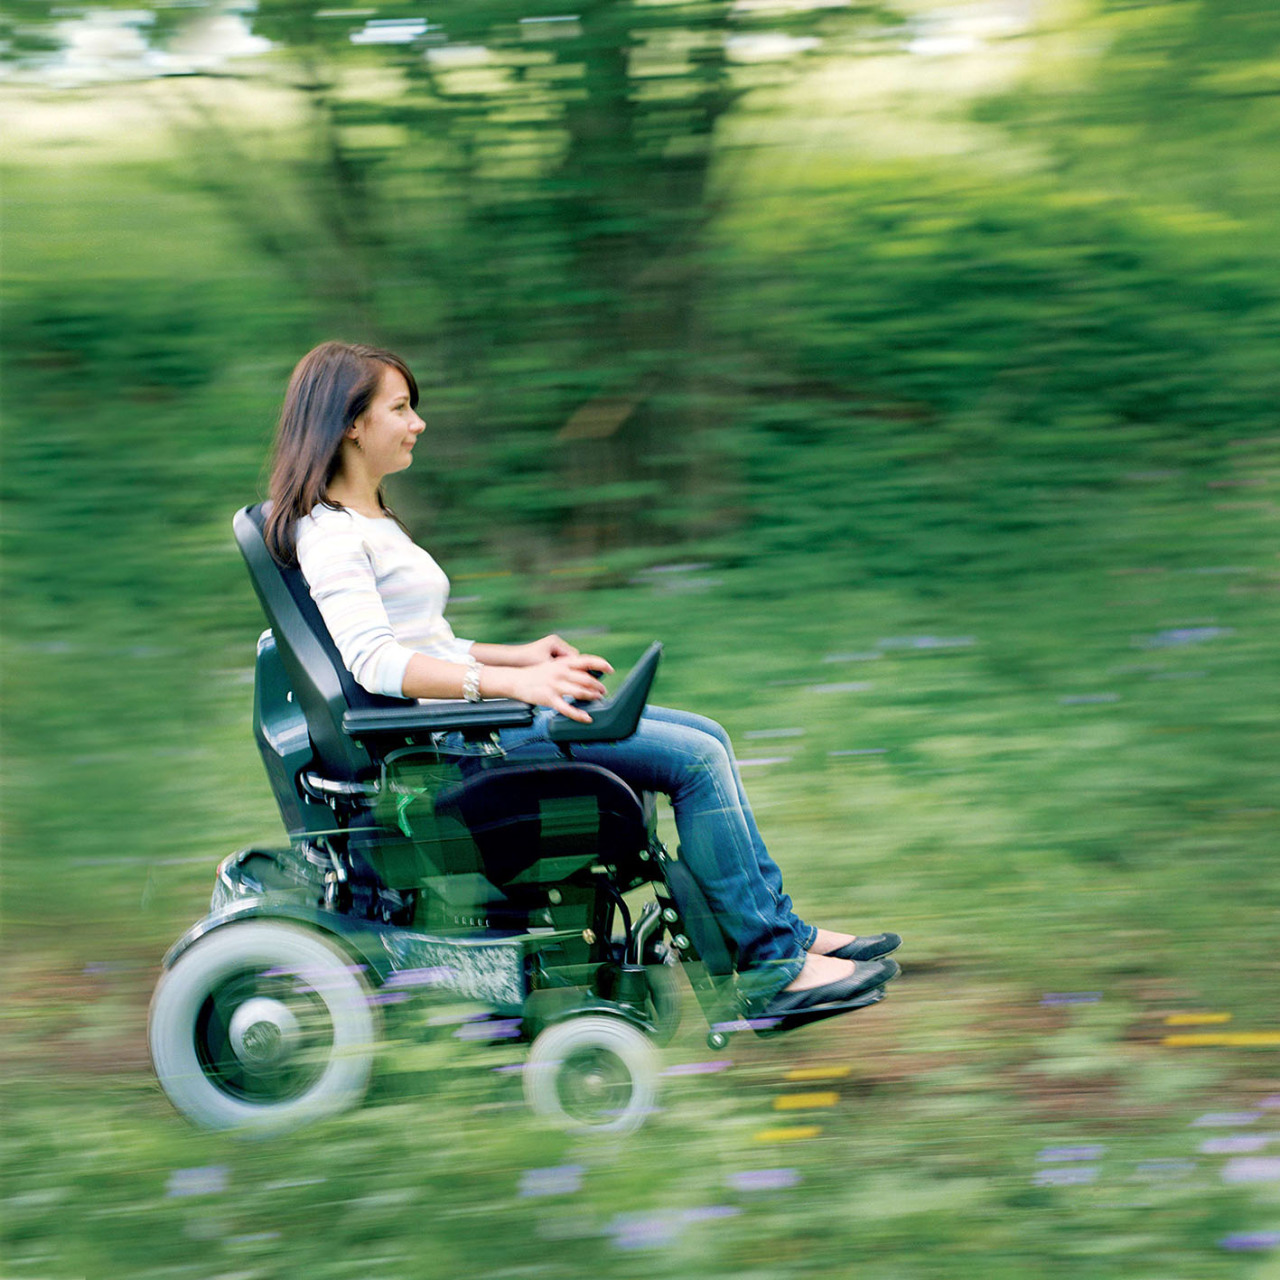 A power wheelchair for rugged outdoor use.